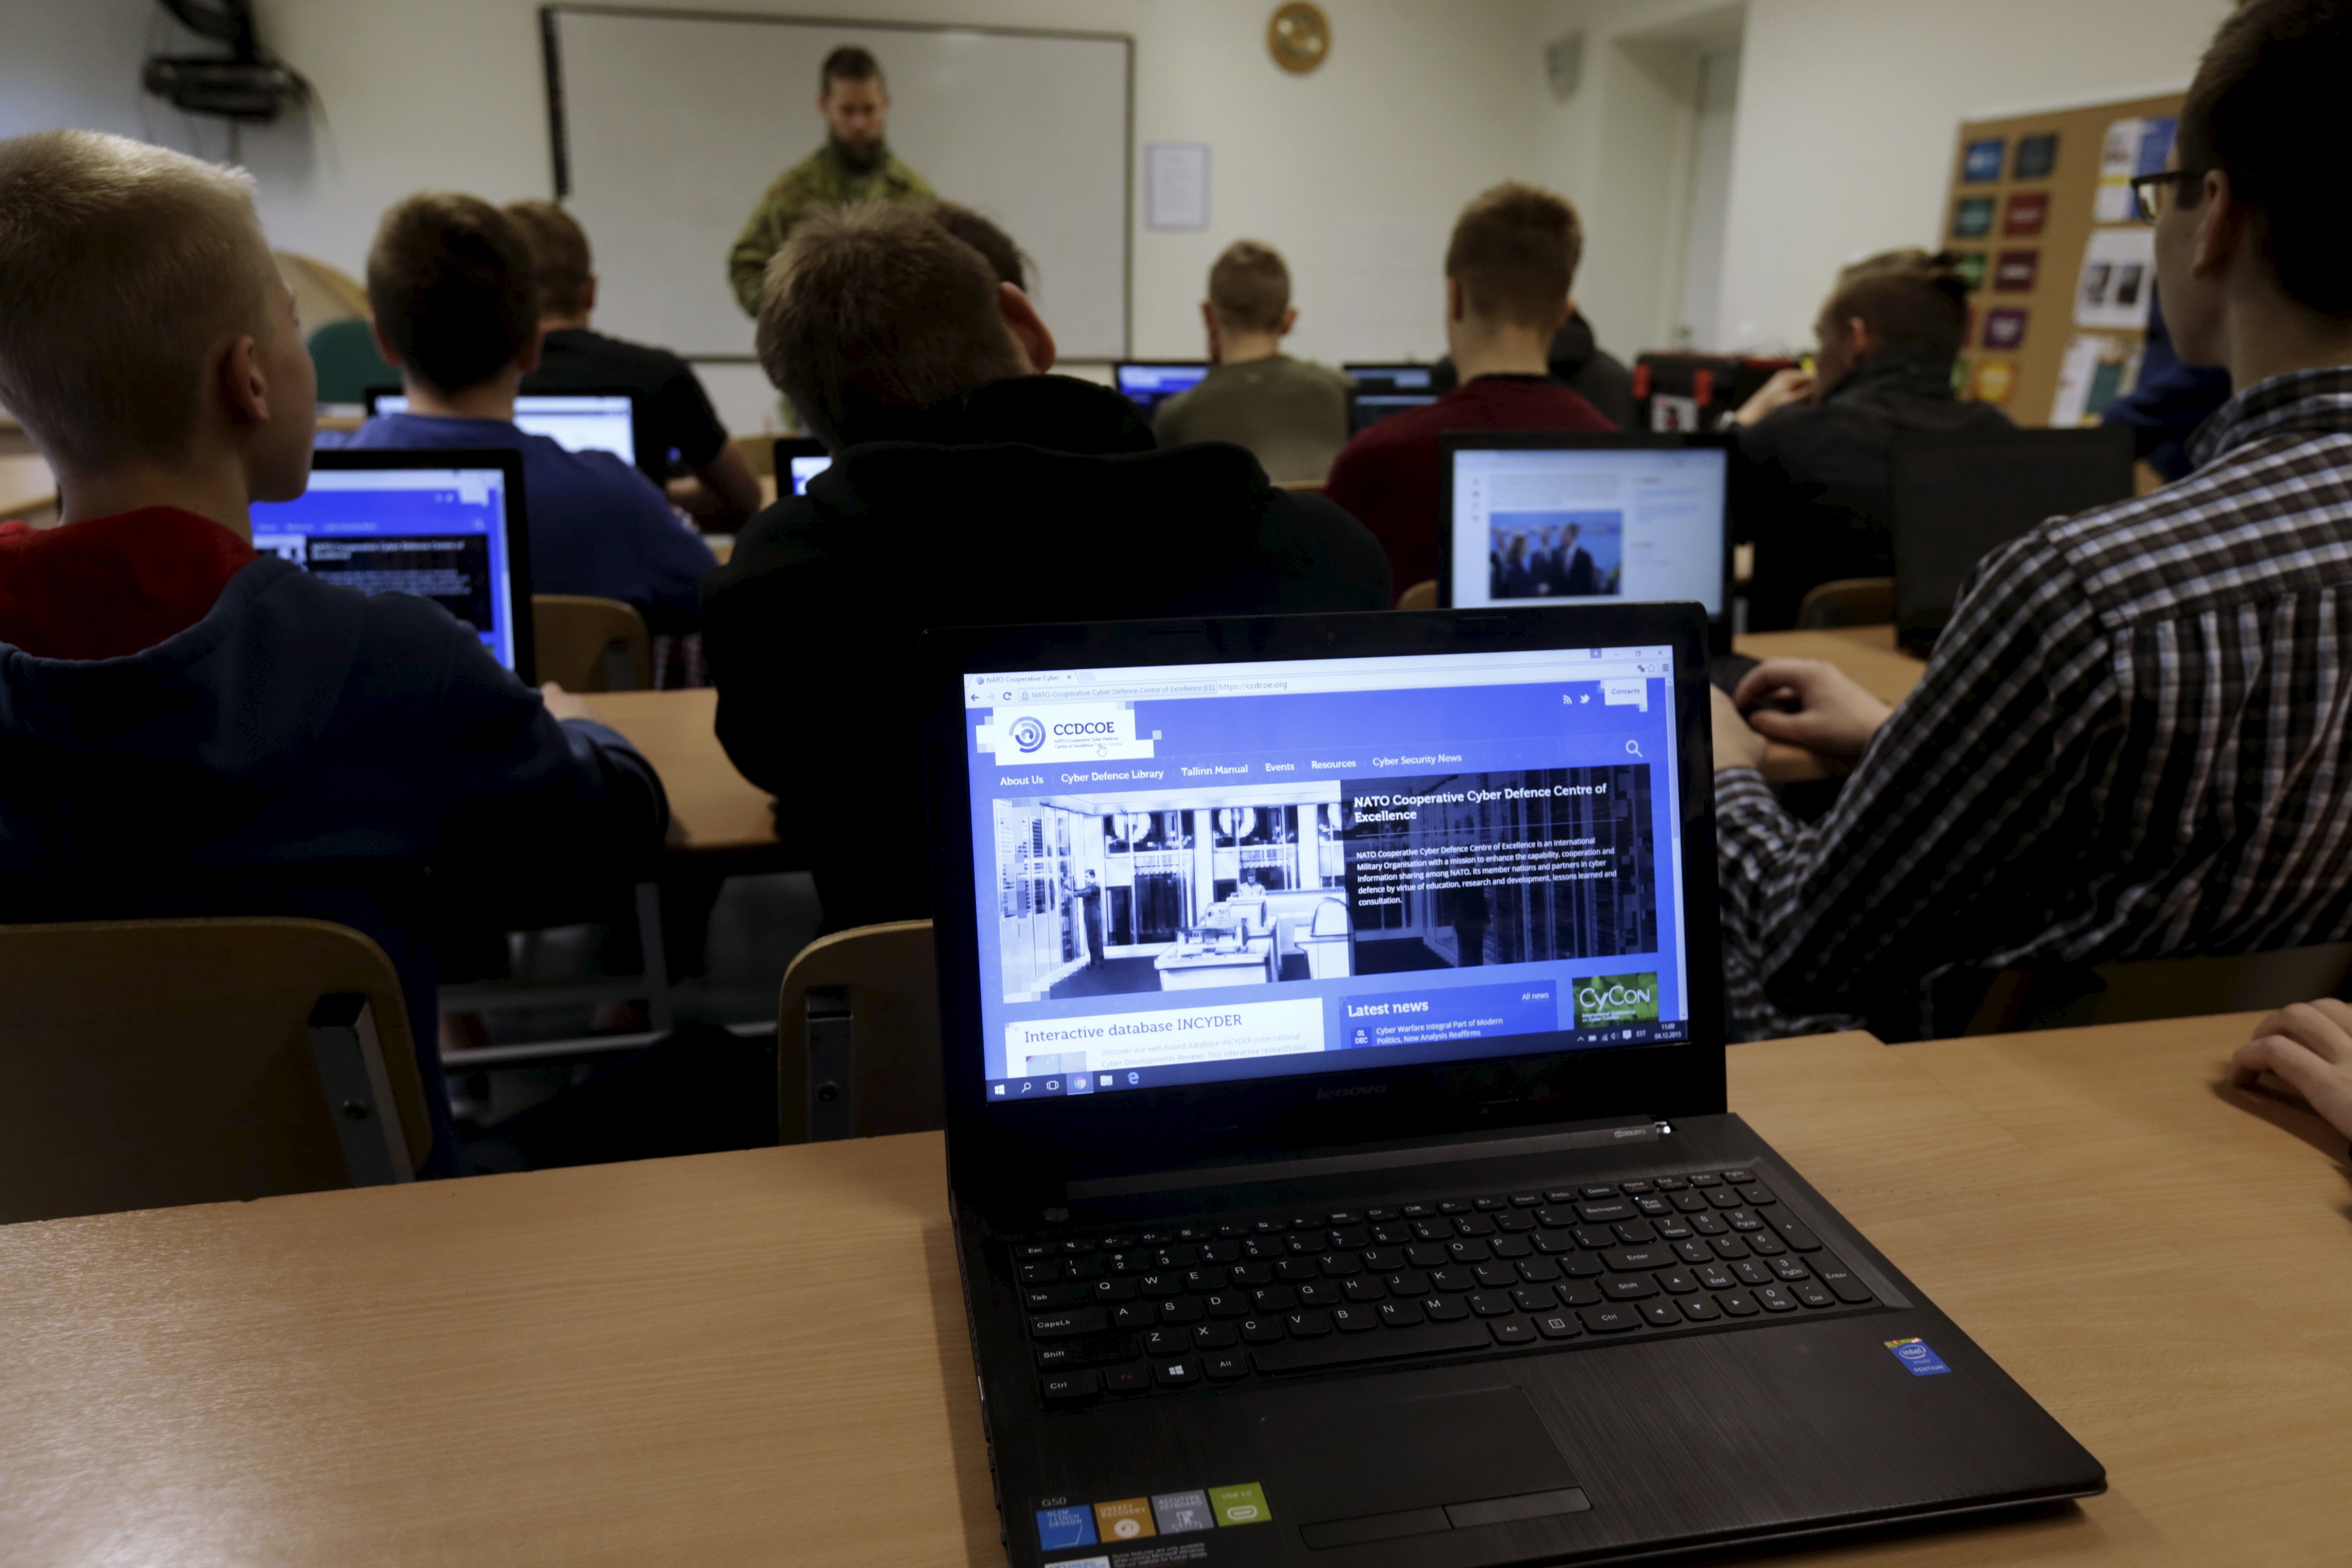 Estonian students attend cybersecurity classes